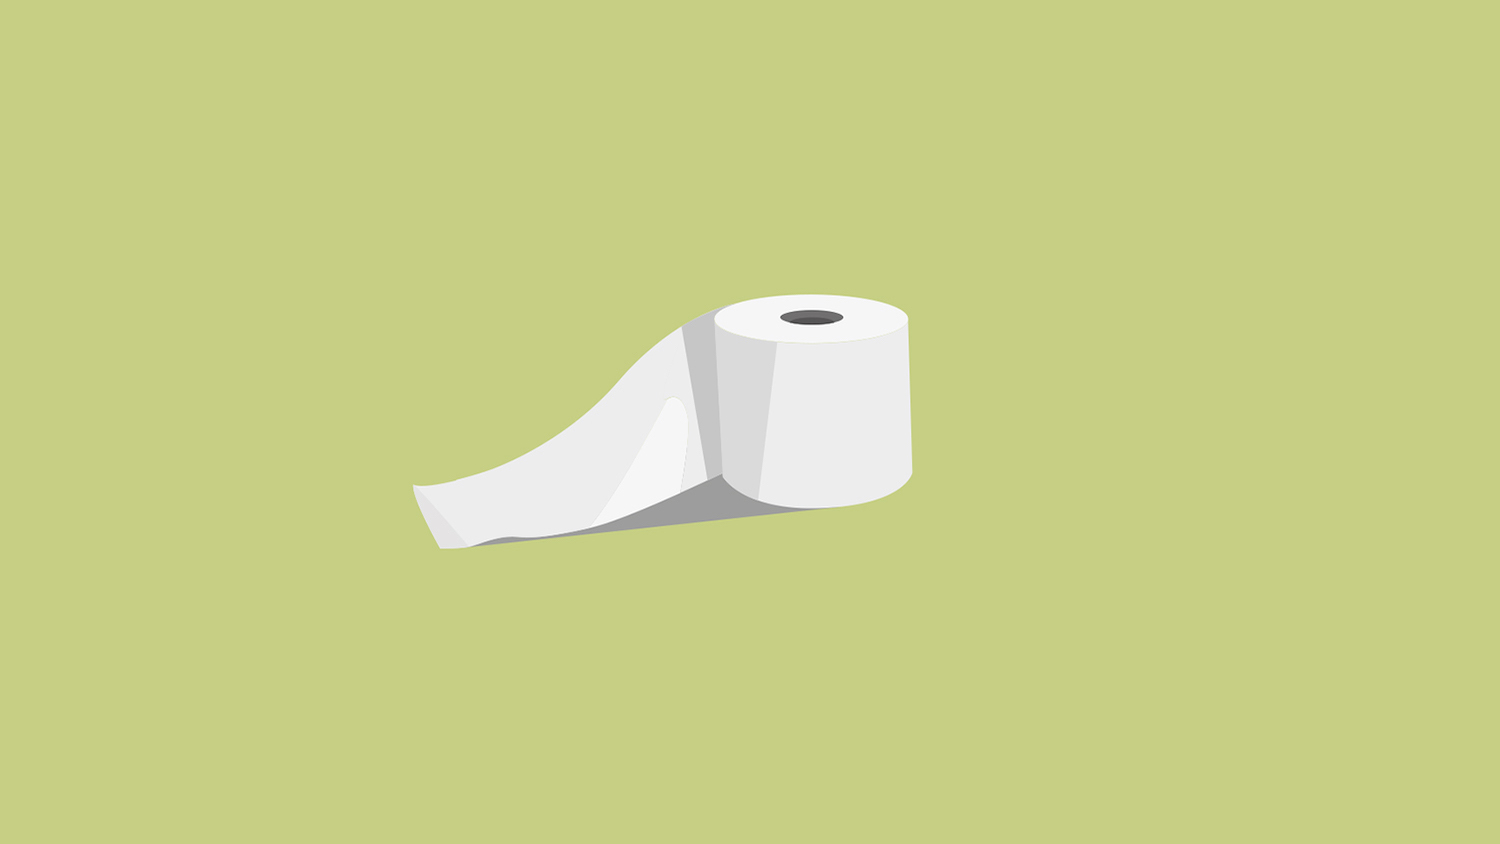 This illustration shows a roll of toilet paper